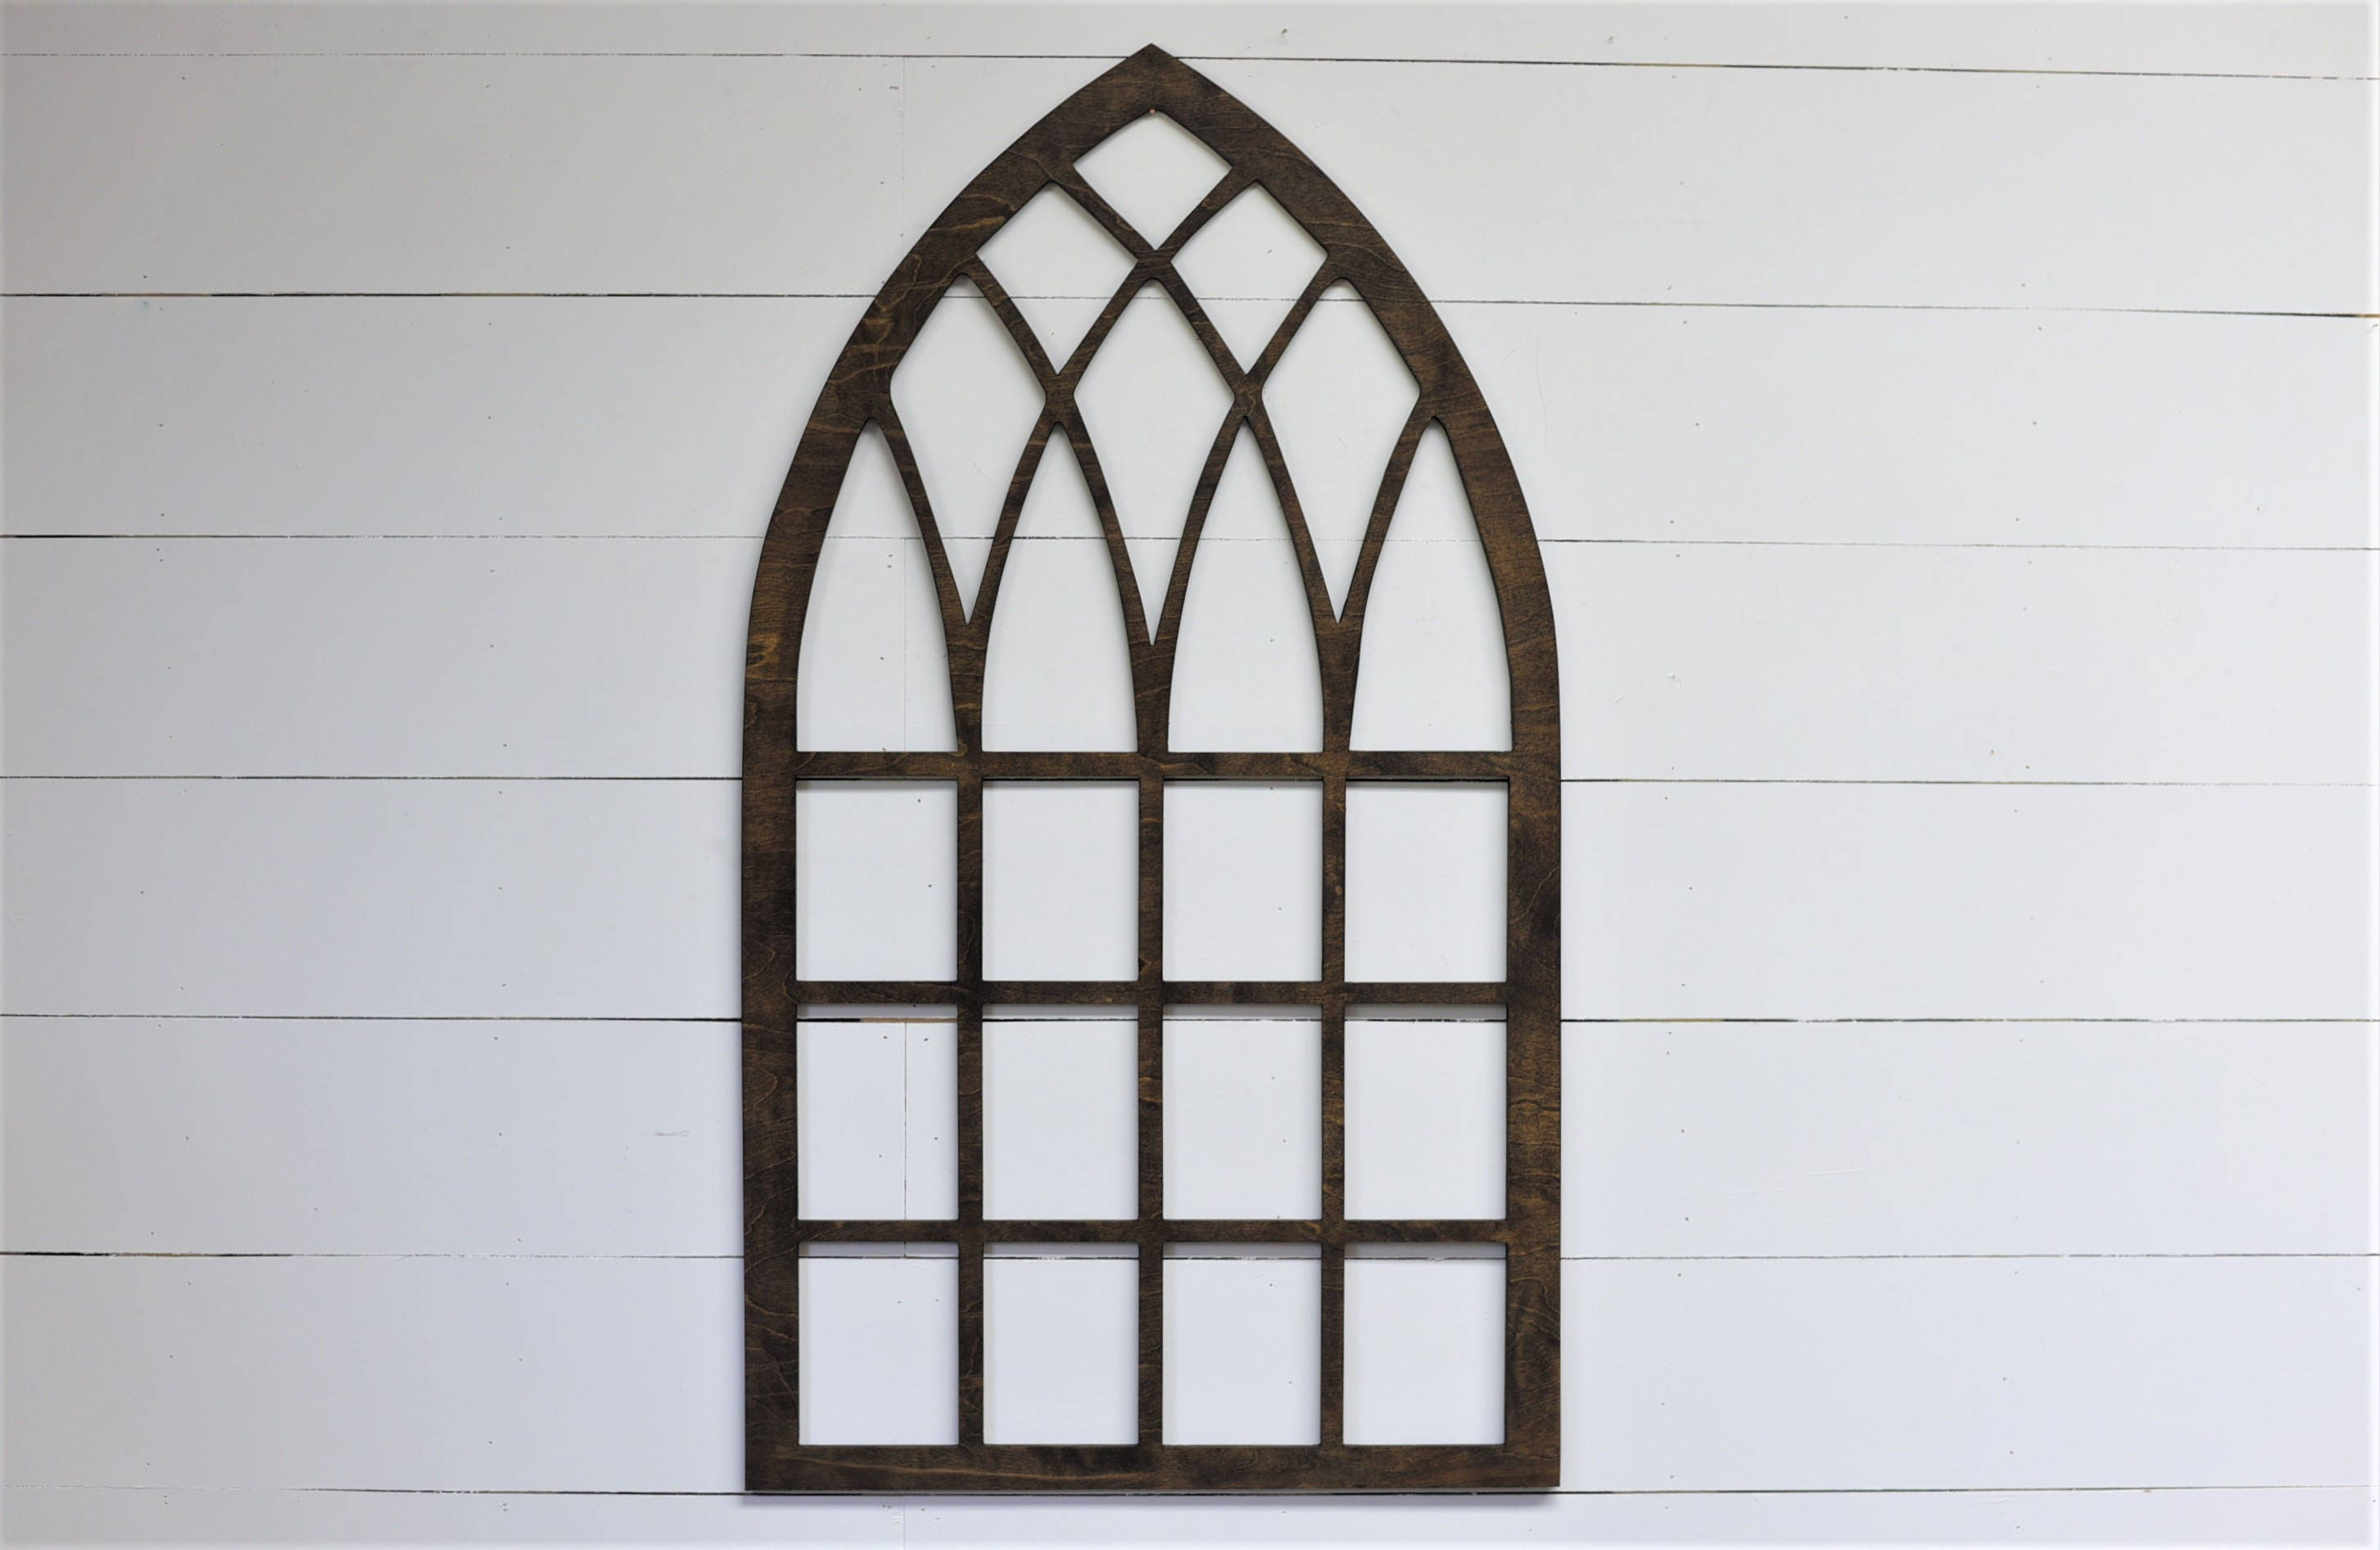 Vintage Inspired 46x26 Pointed Wooden Arch Window Frame